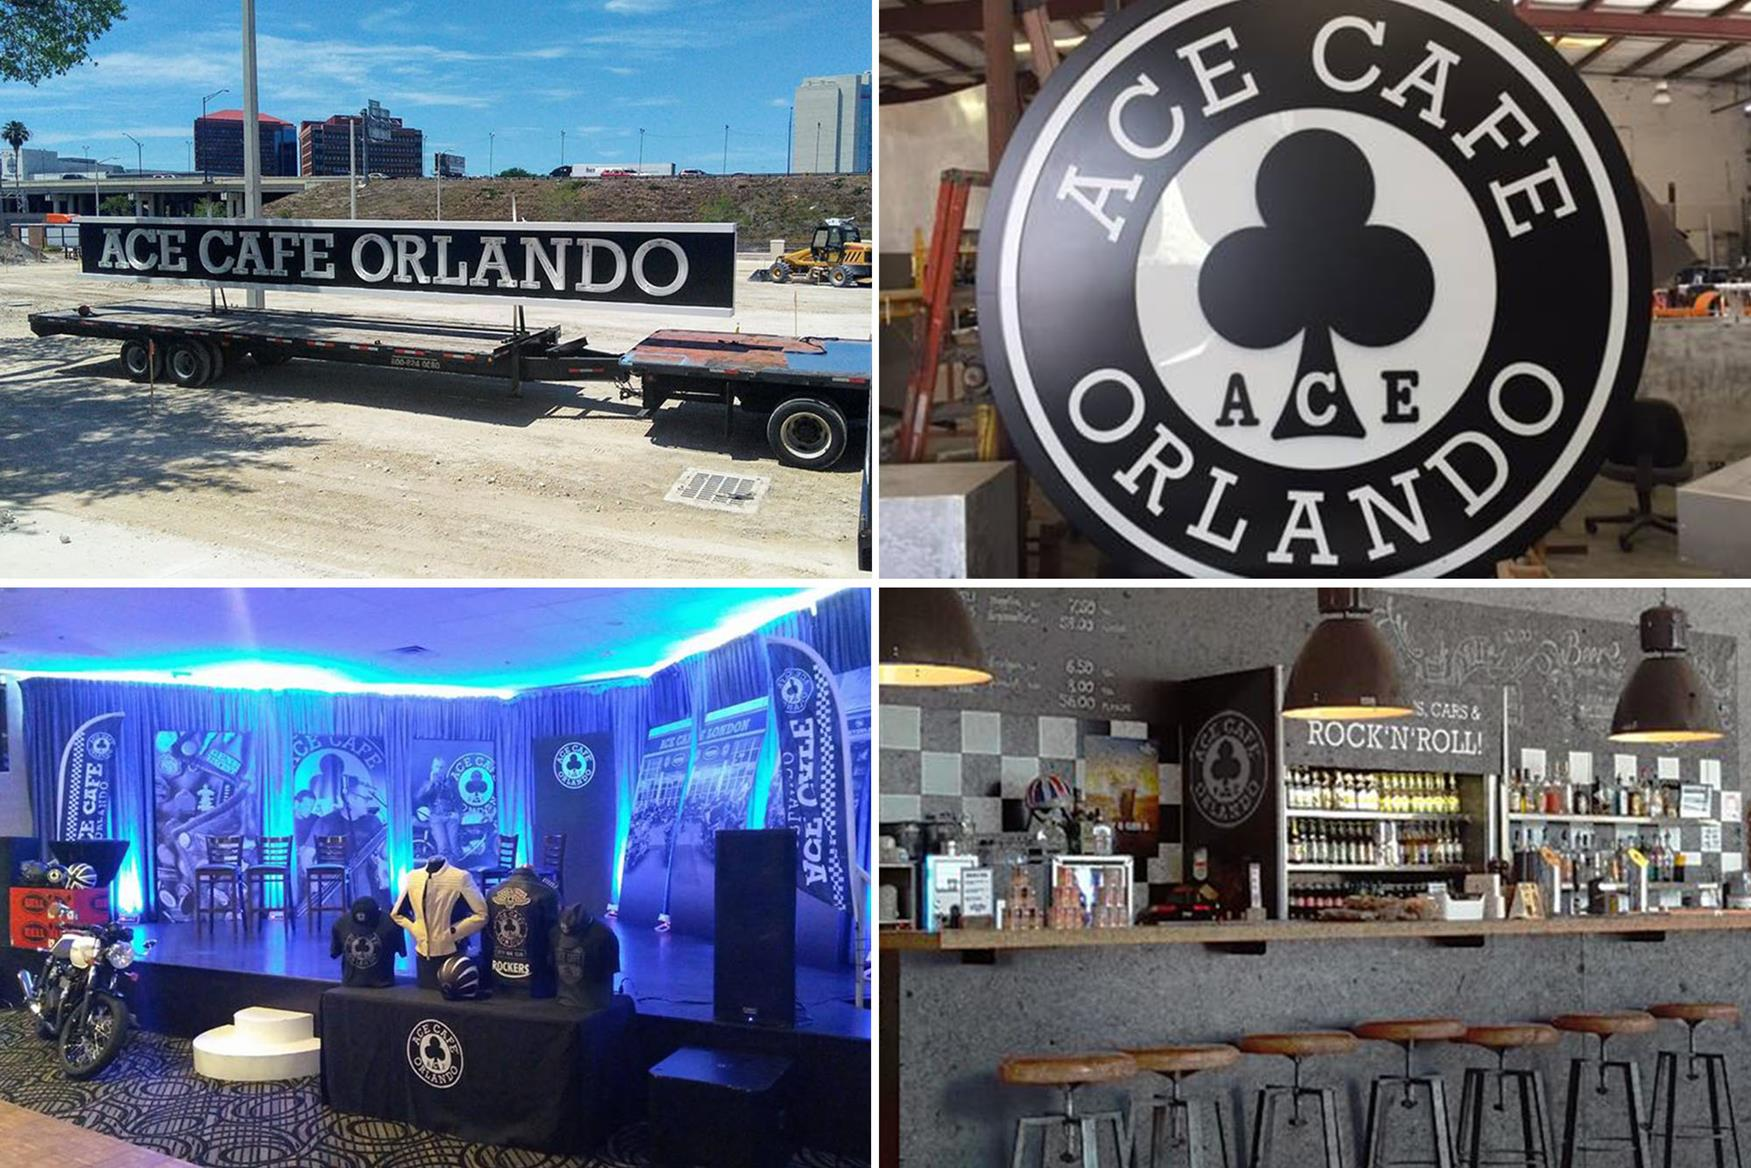 Ace Cafe Orlando opens next week! | MCN